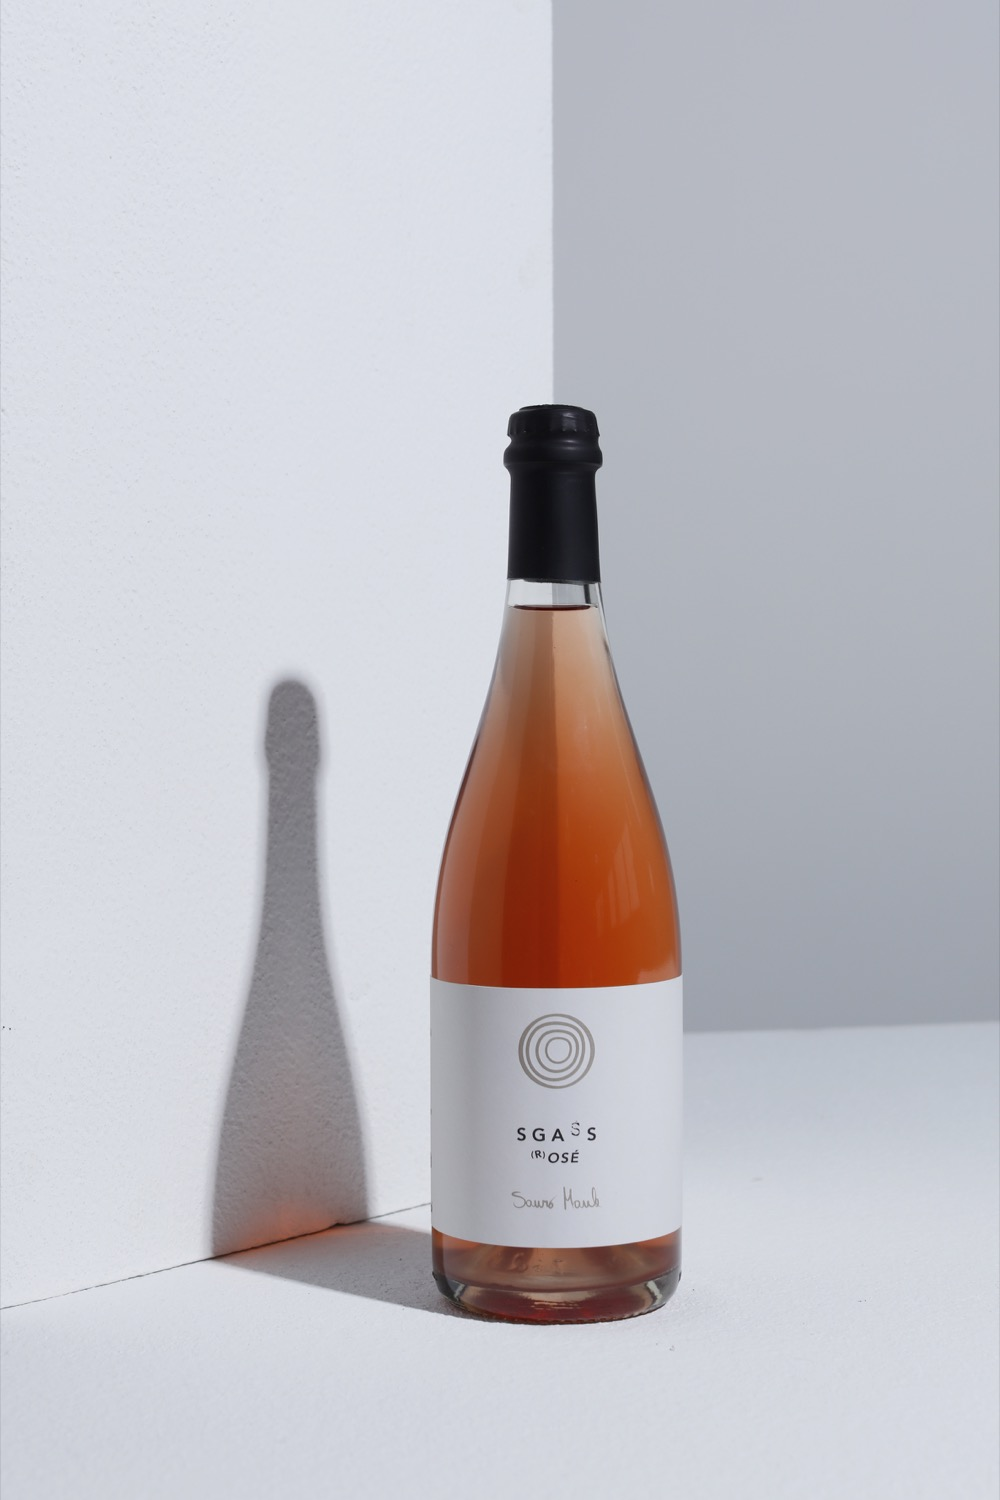 Sauro-Maule-wines-sgass-rose_DS_7326_p_1500